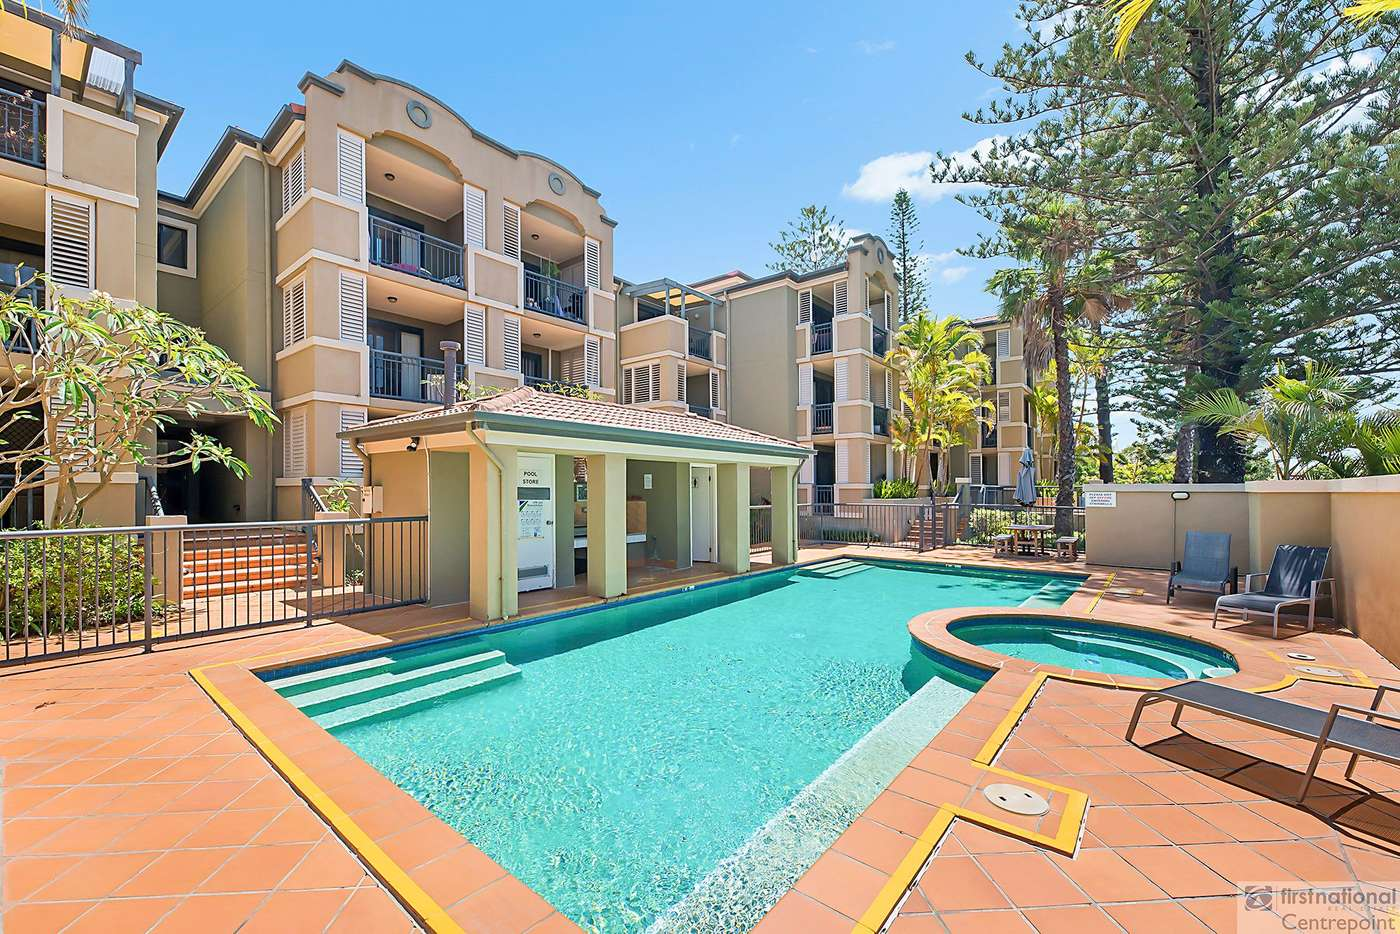 Seventh view of Homely apartment listing, 24/38 Petrel Ave, Mermaid Beach QLD 4218